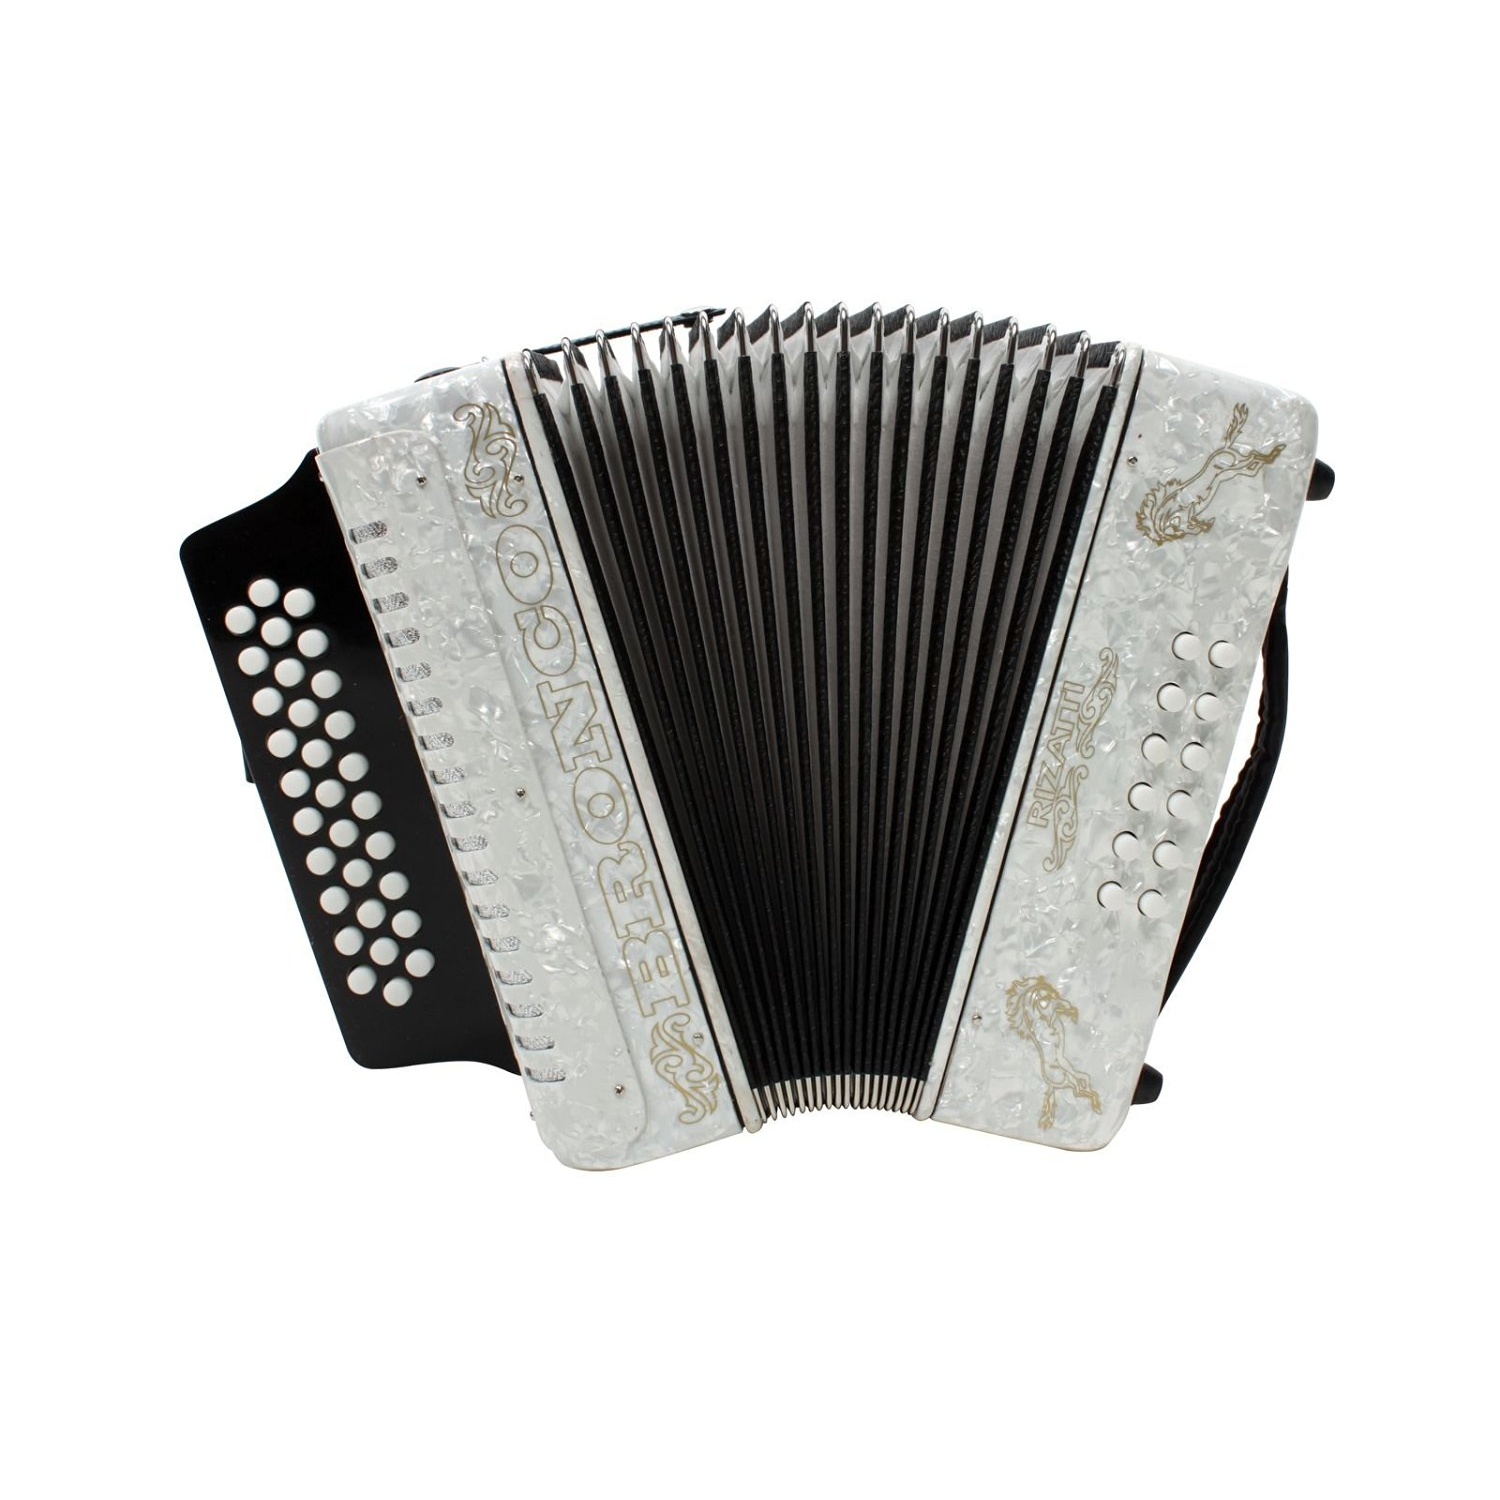 Rizatti Bronco RB31FW Diatonic Accordion - White - Key F/Bb/Eb